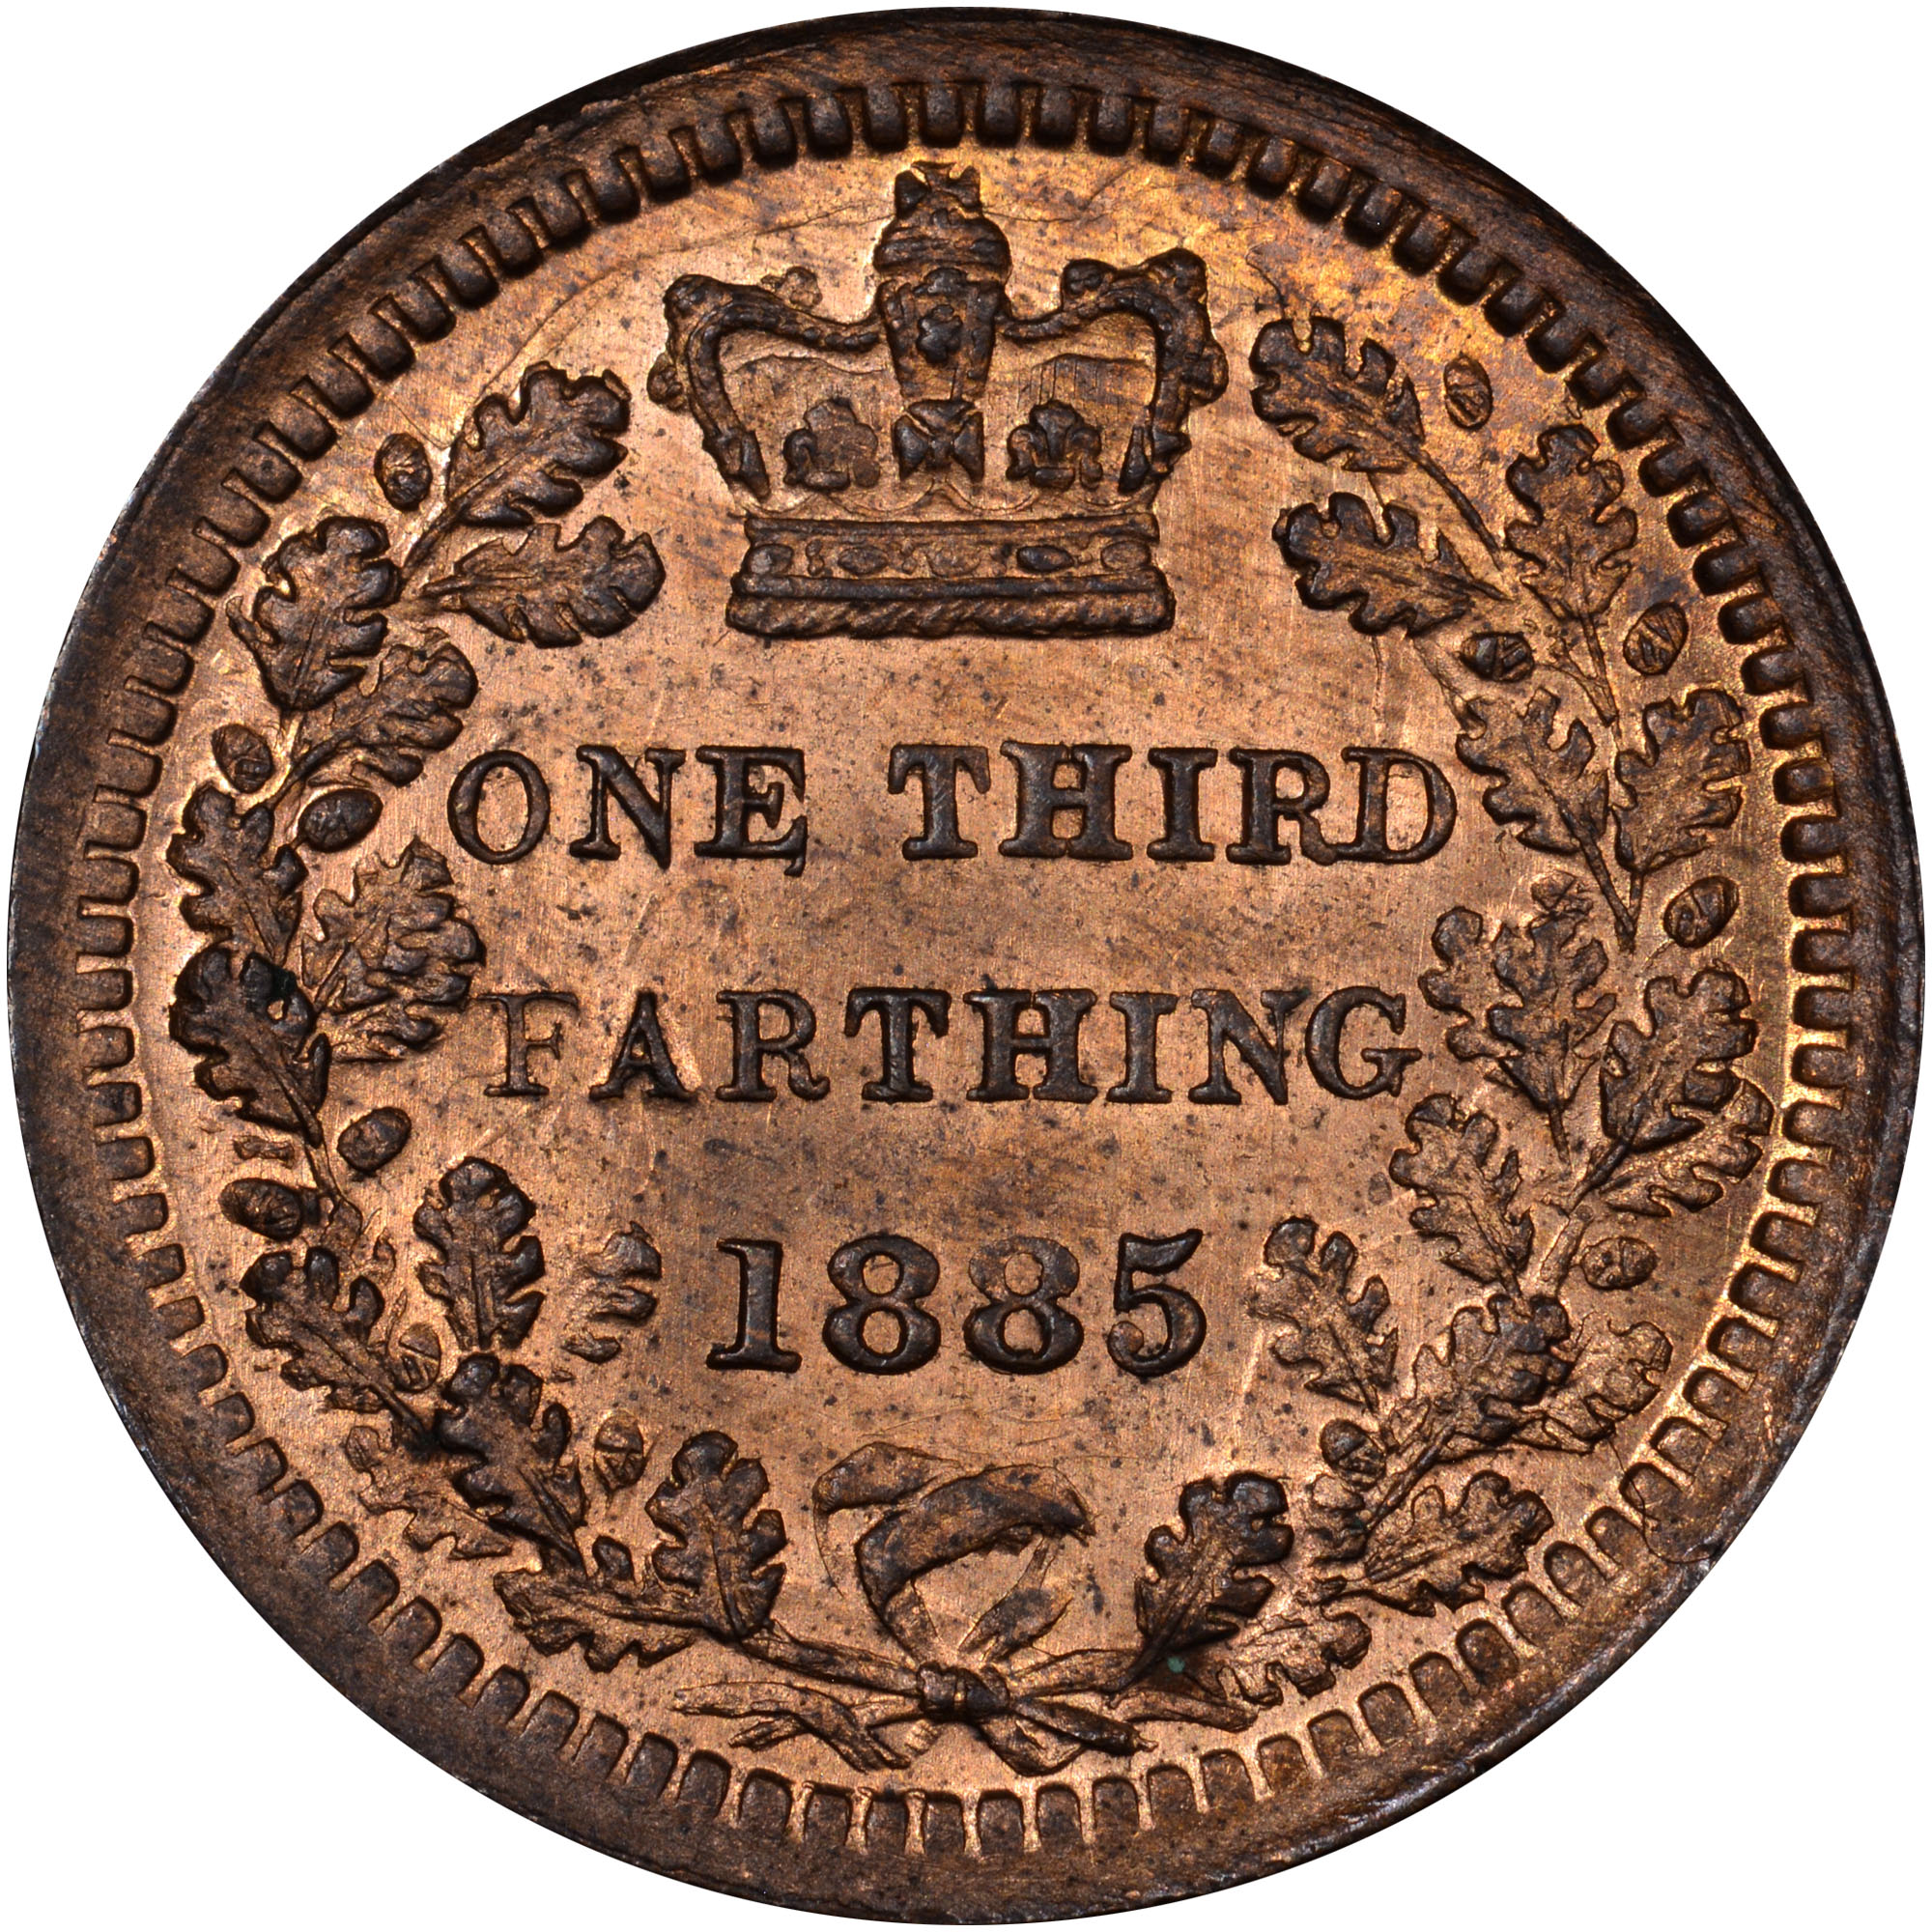 1866-1885 Great Britain 1/3 Farthing reverse